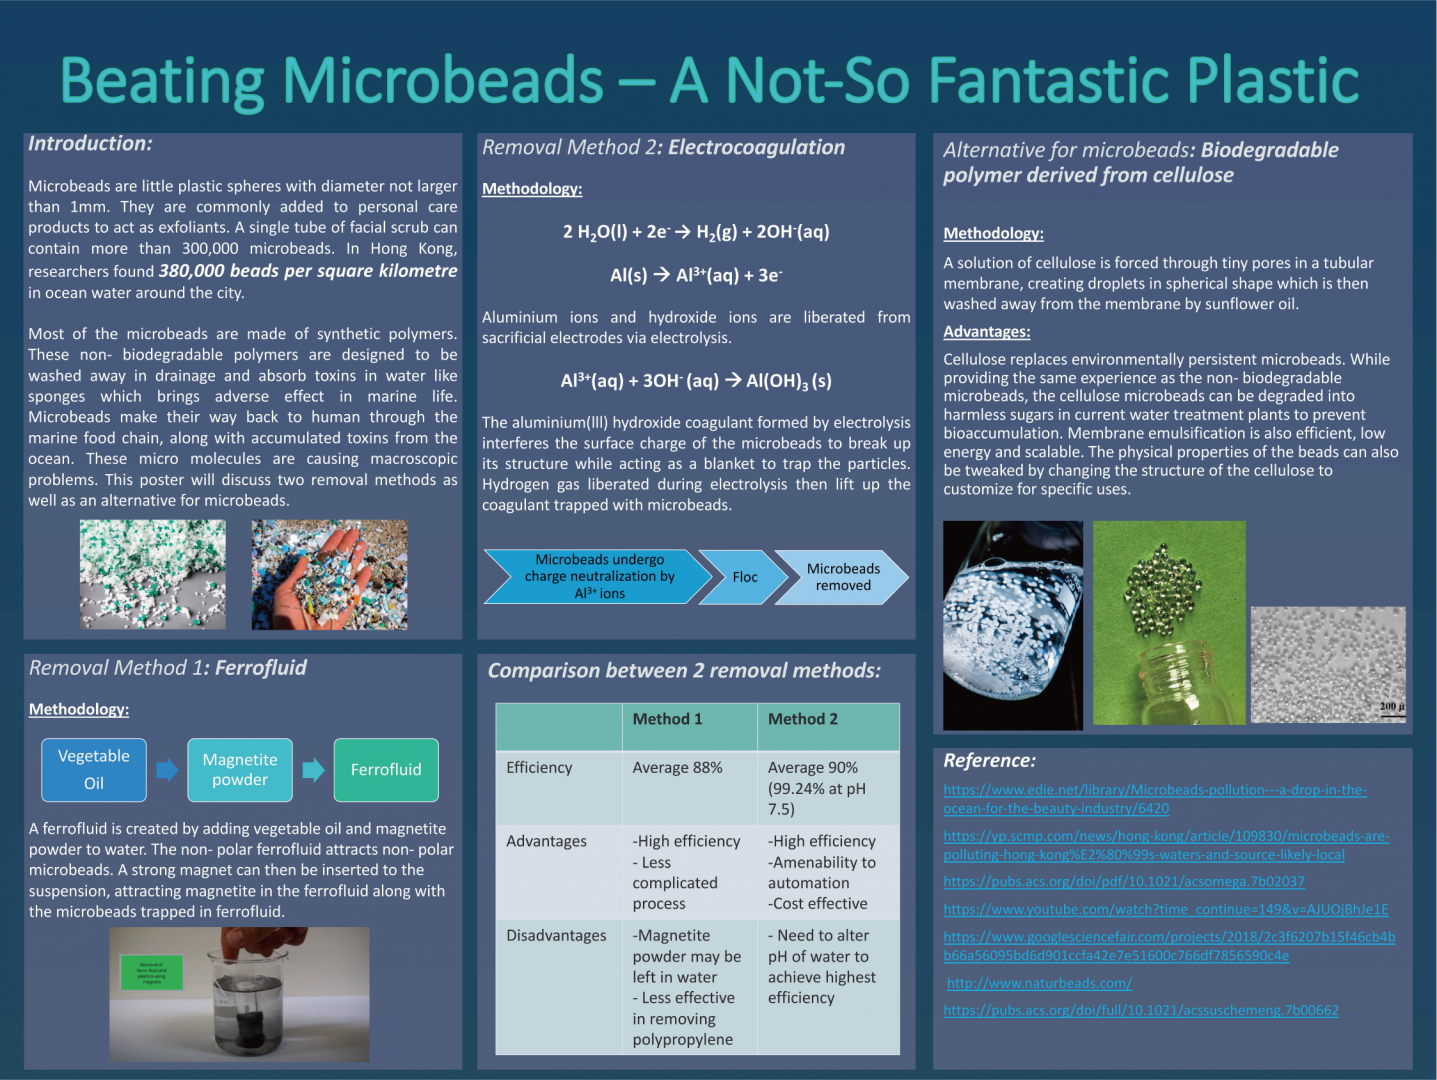 Beating Microbeads - A Not-so Fantastic Plastic